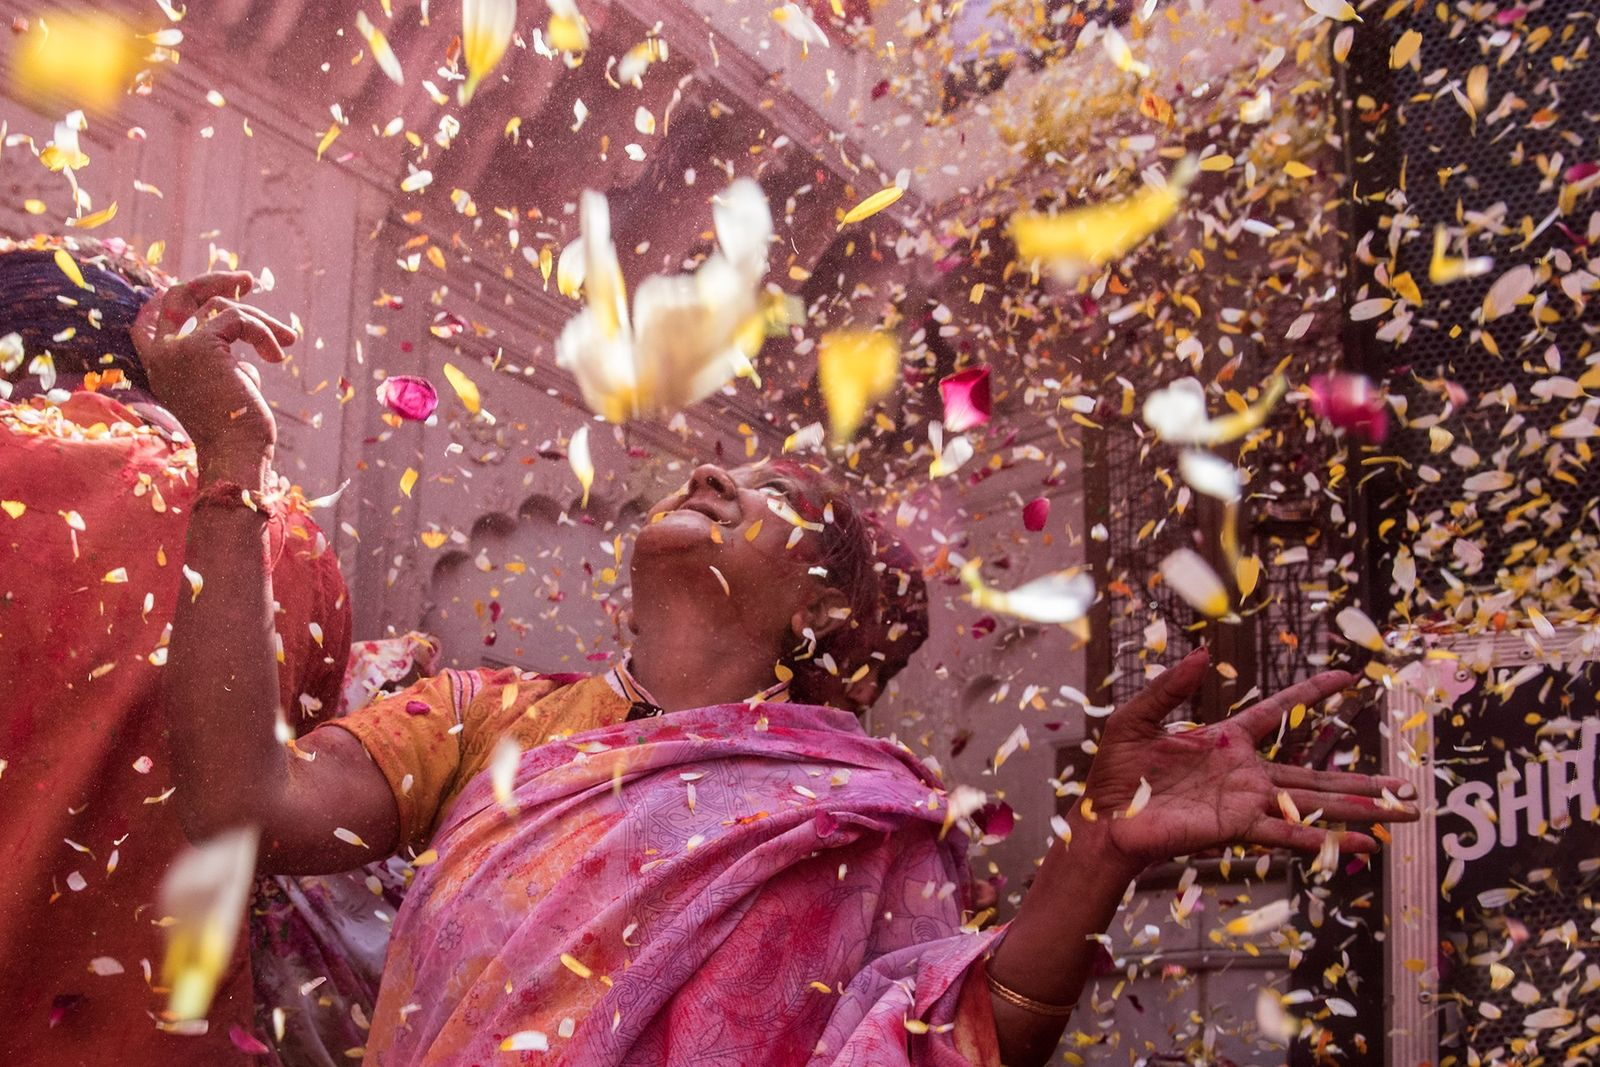 An elderly widow joyfully celebrates Holi by showering petals at the Gopinath Temple, Vrindaban.